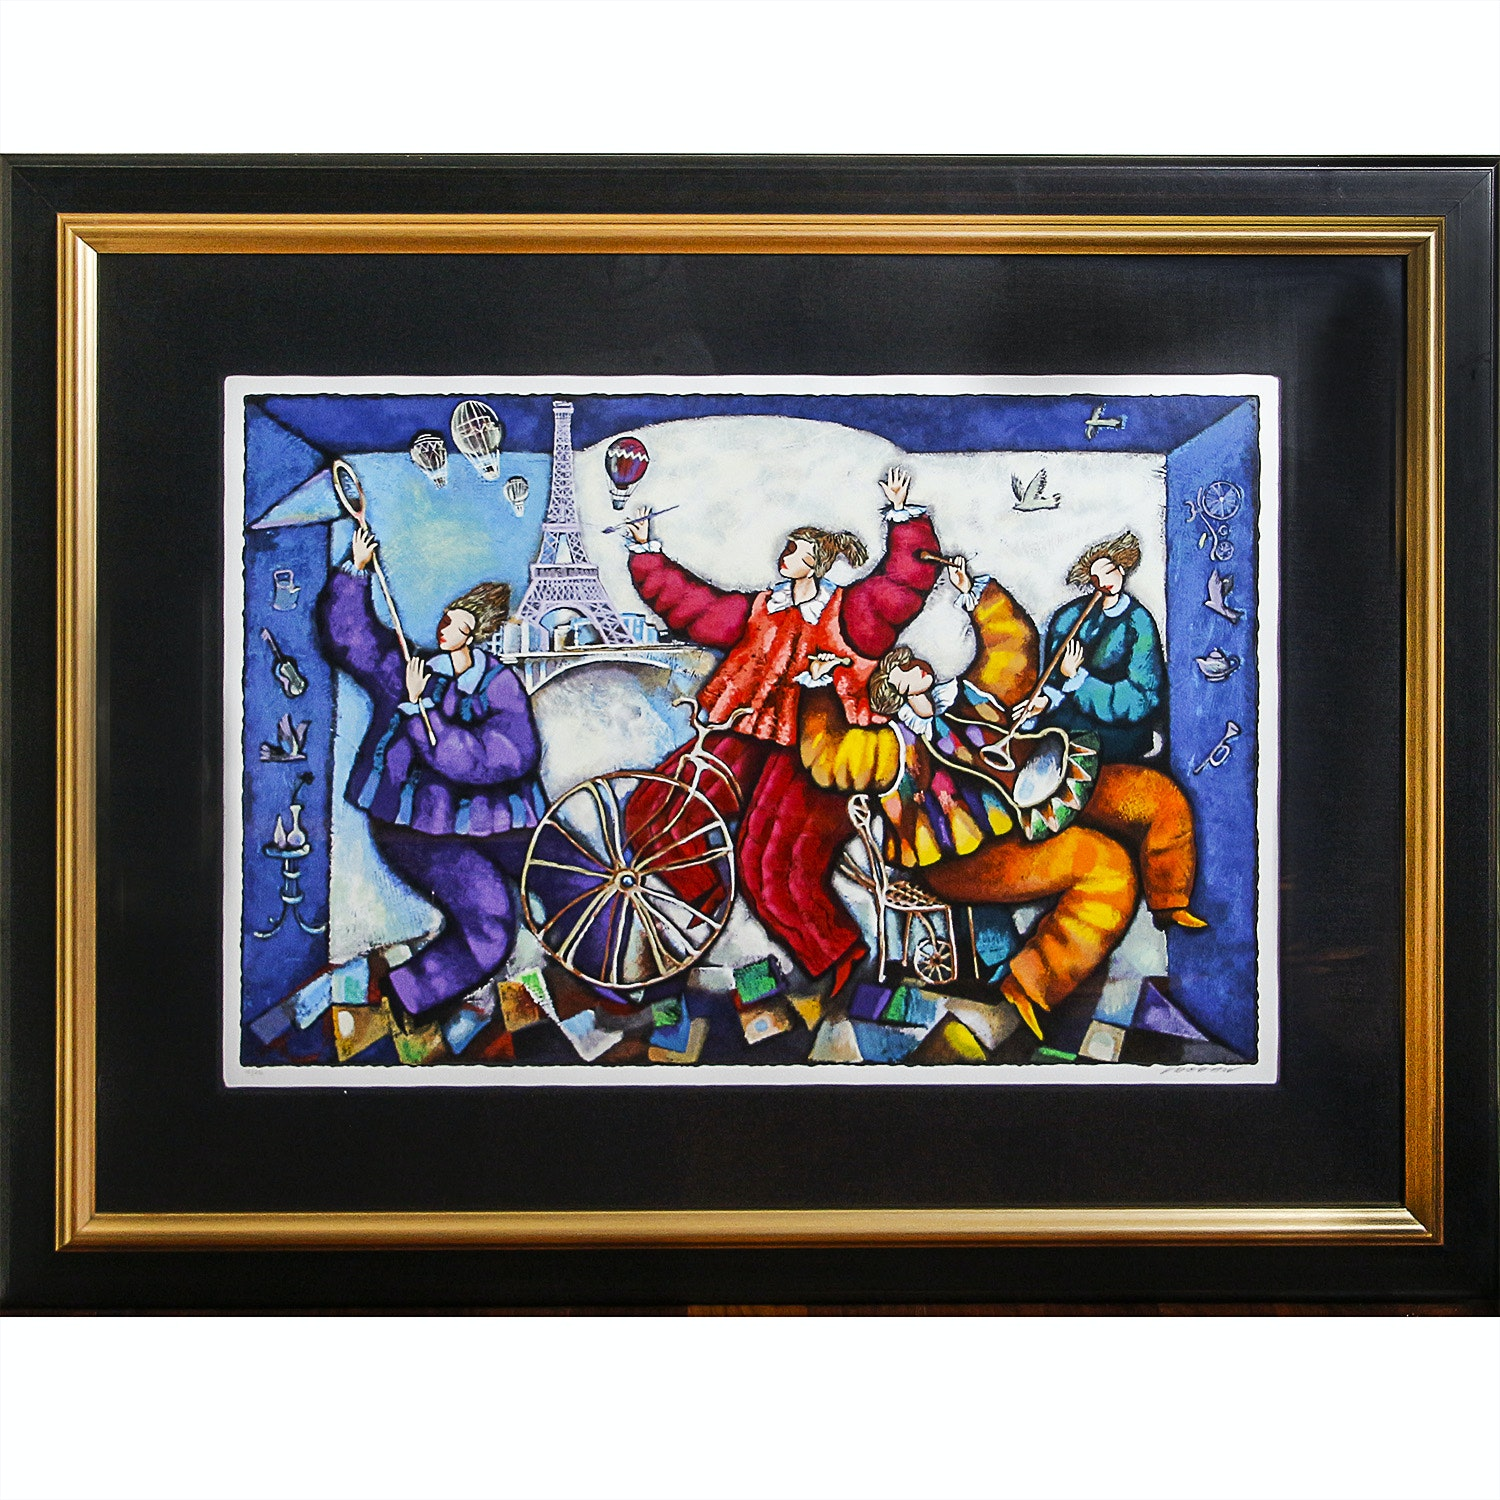 Limited Edition Serigraph of Parisian Circus